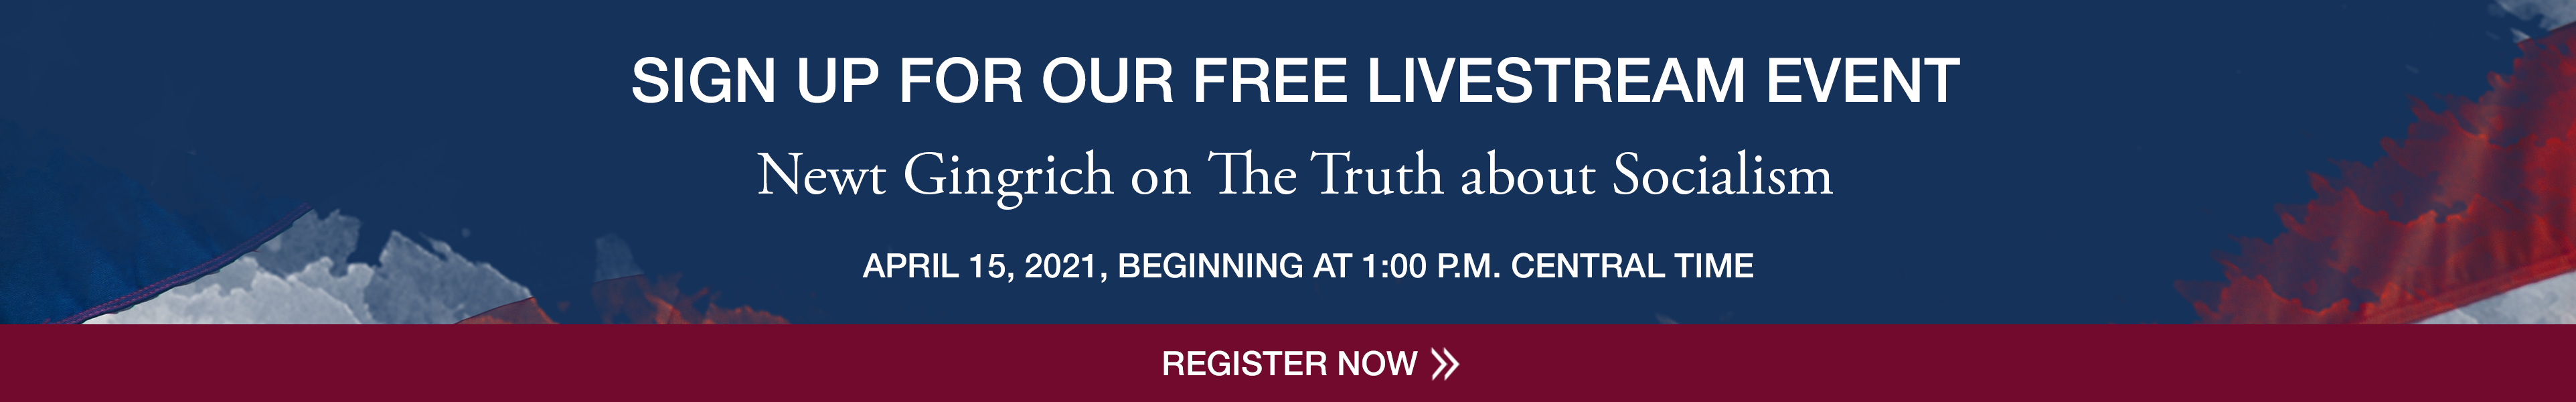 Register for the free Spring Forum livestream event